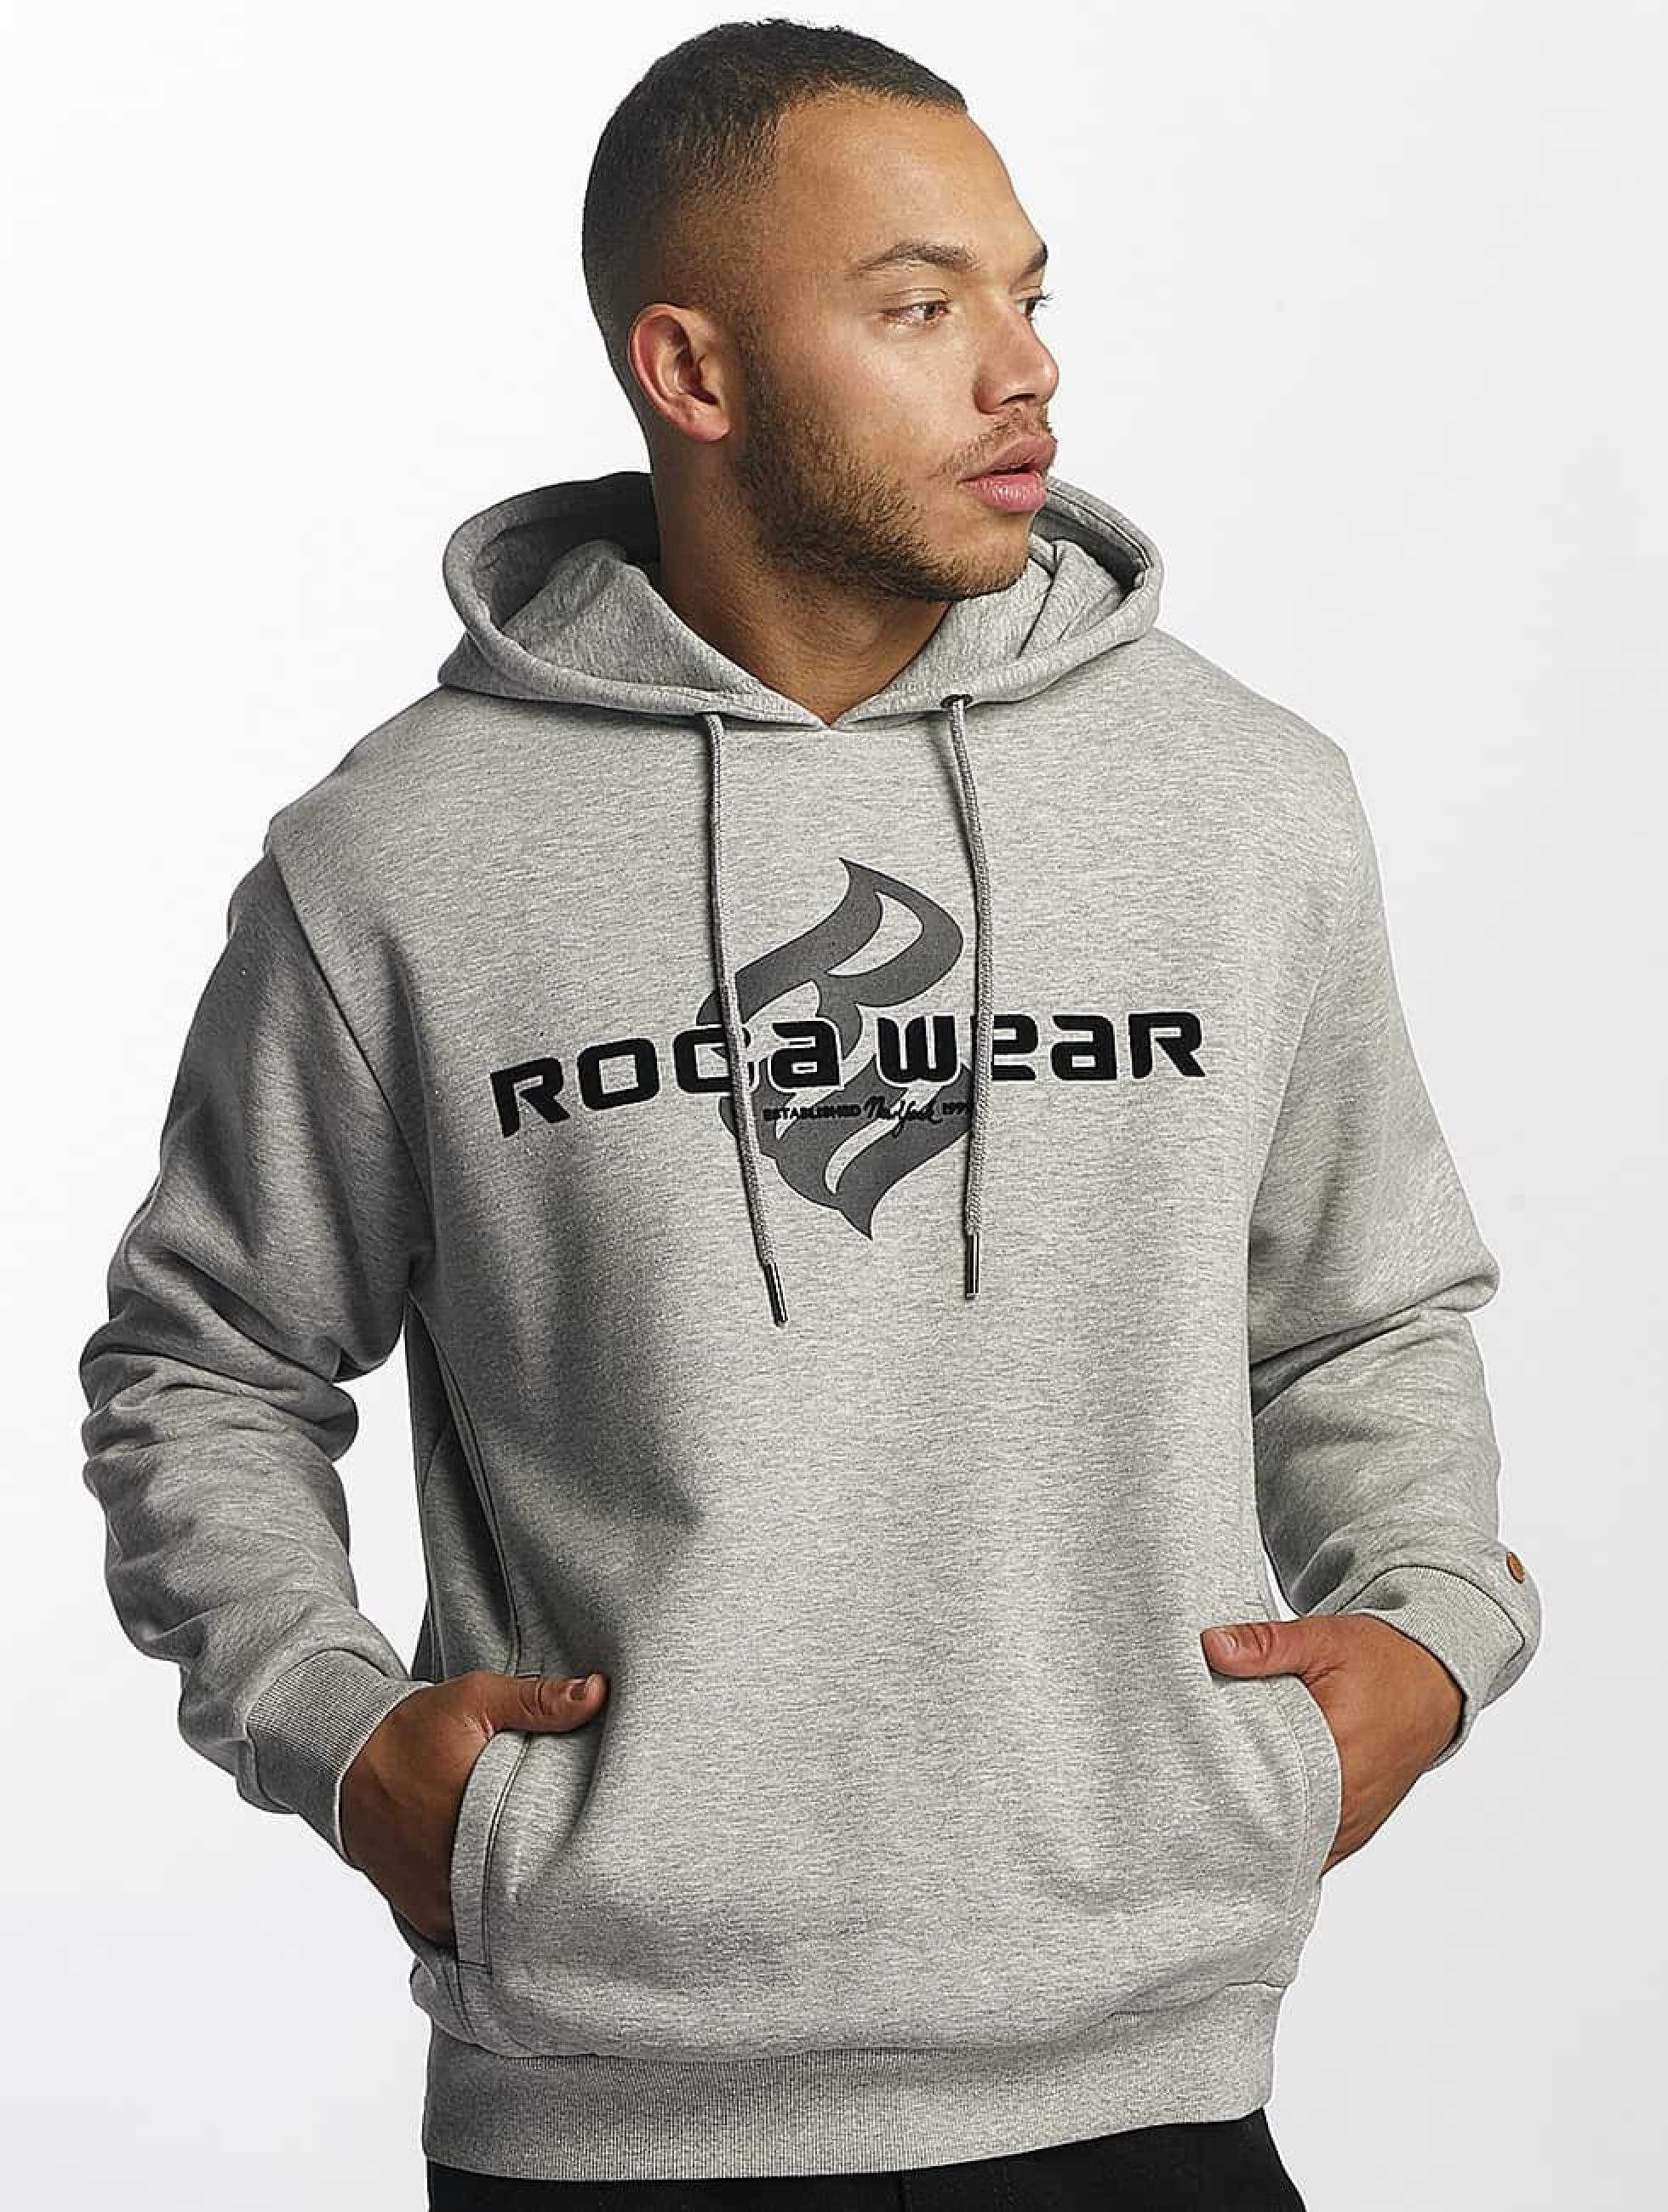 Rocawear / Hoodie NY 1999 H in grey M